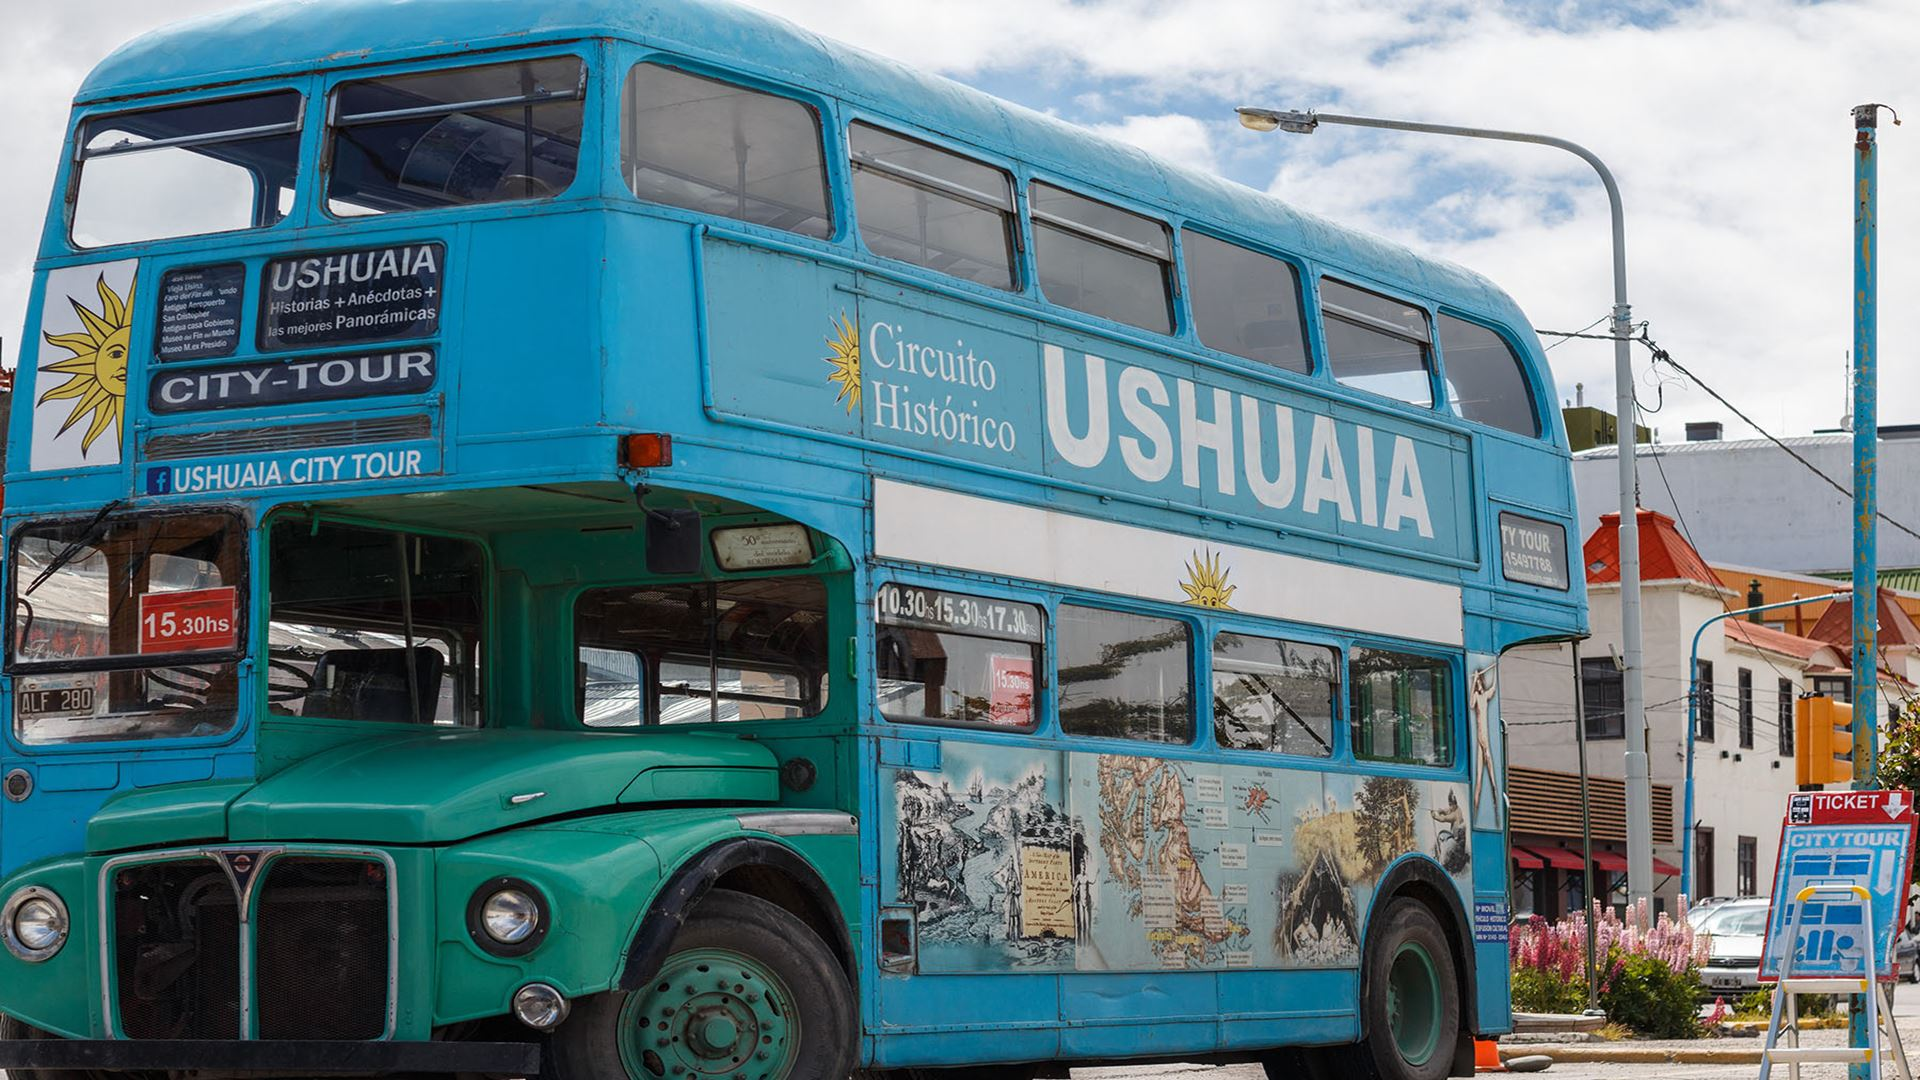 City Tour Double Decker Ushuaia